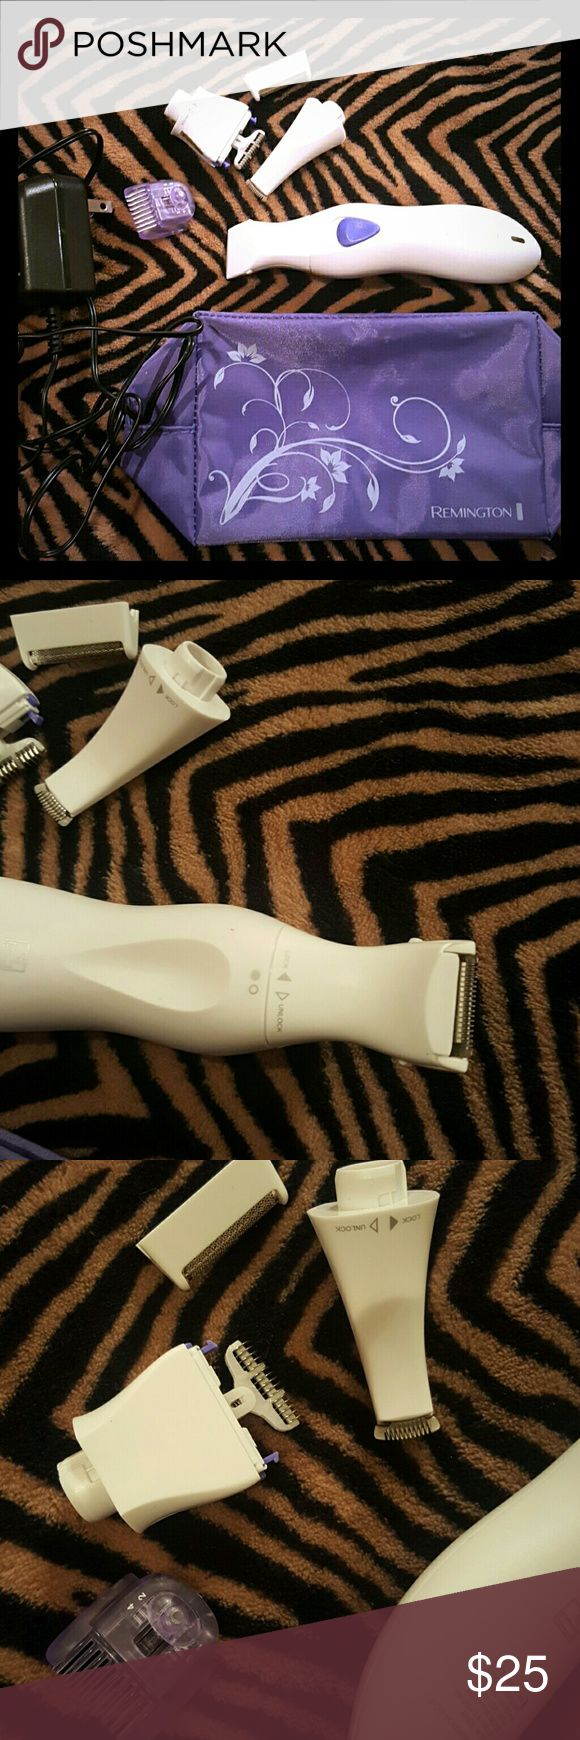 Remington electric shaver Brand new never used electric shaver, plugs in so you just have to charge it. Comes with different shaver for different parts of the body.  Sephora remington Makeup Brushes & Tools